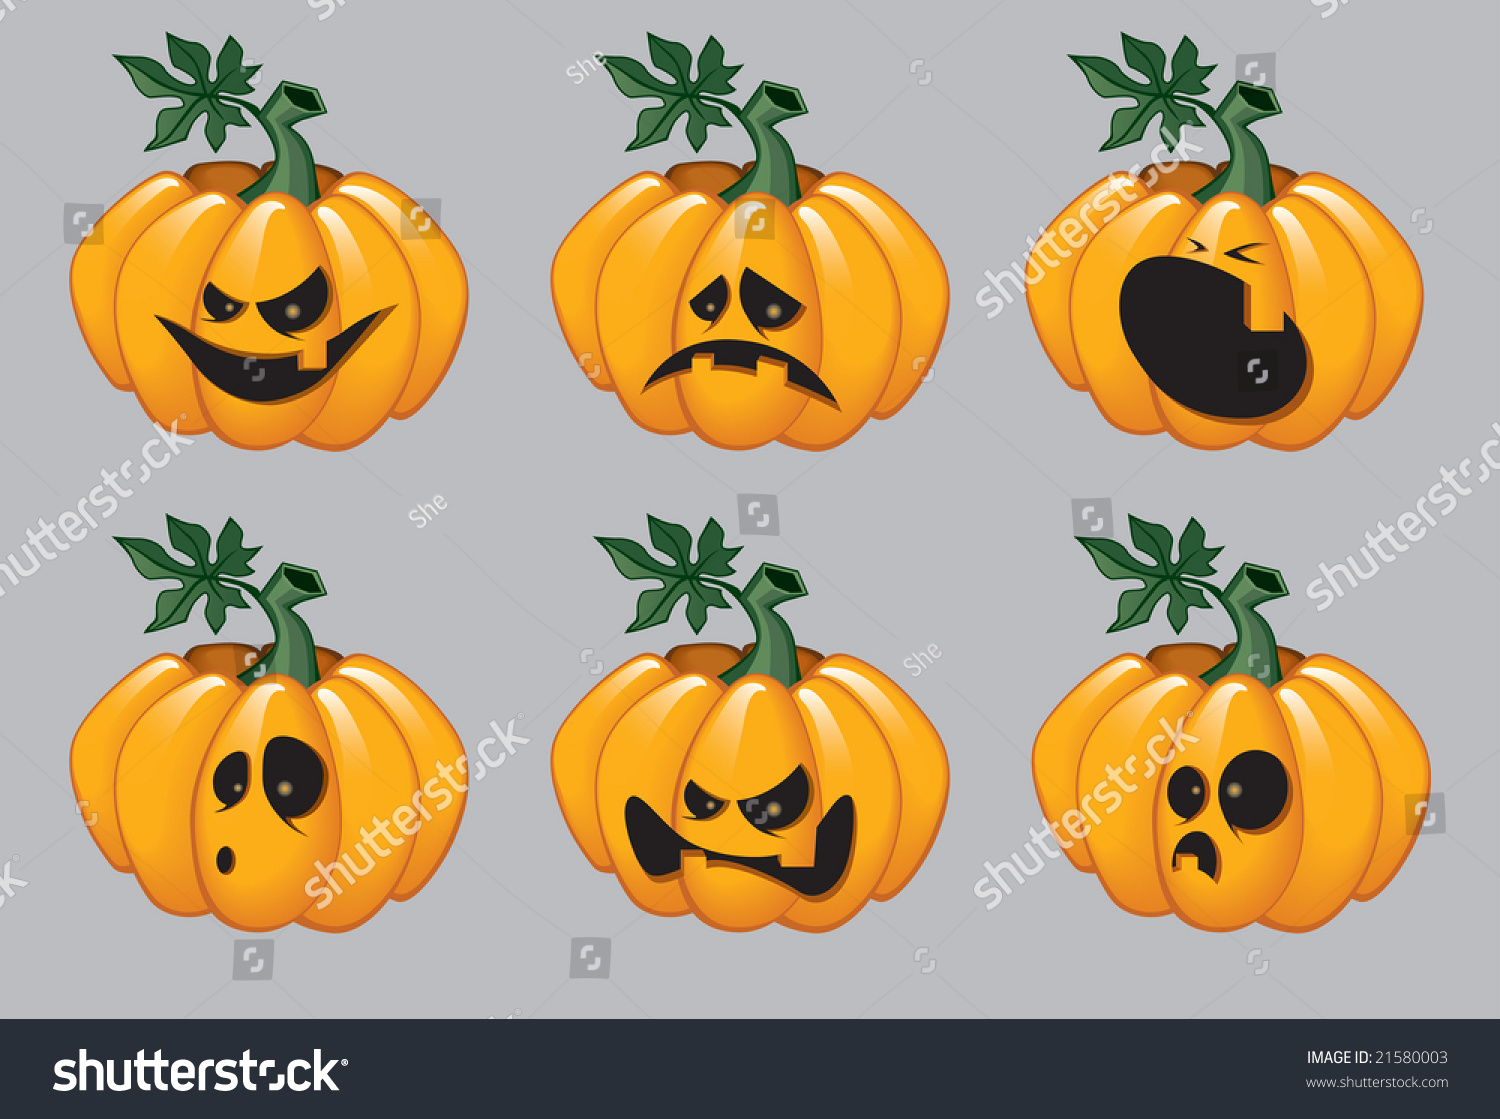 Cartoon halloween pumpkins emotions on their stock for Surprised pumpkin face